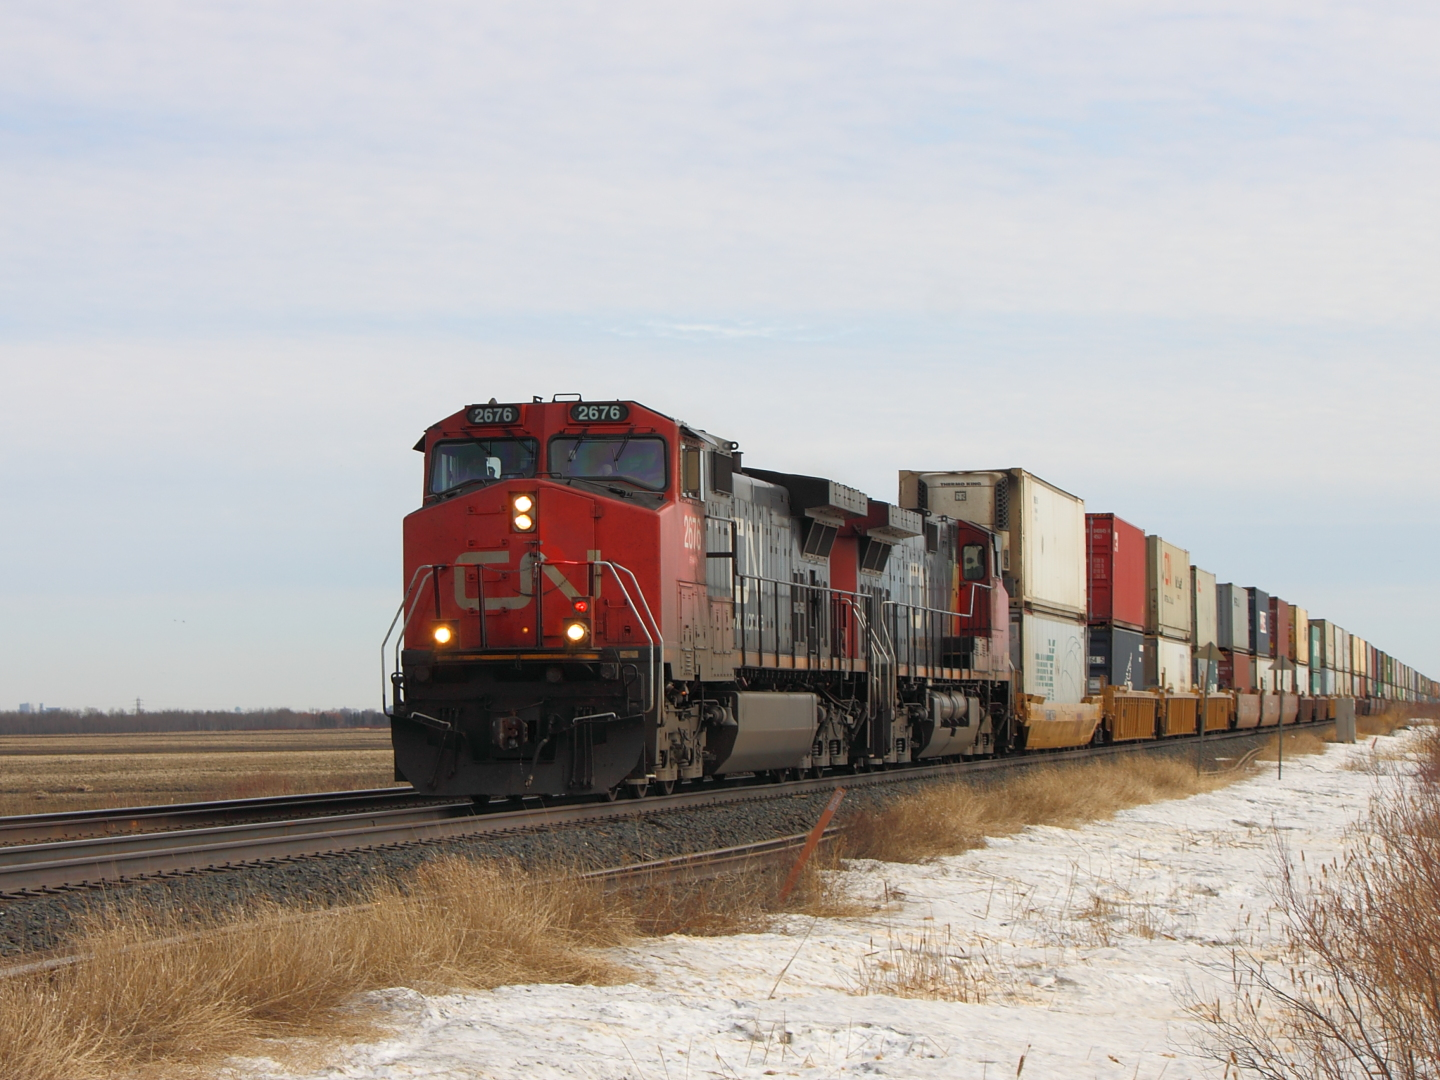 CN 2676 in Winnipeg, MB 2012/03/15